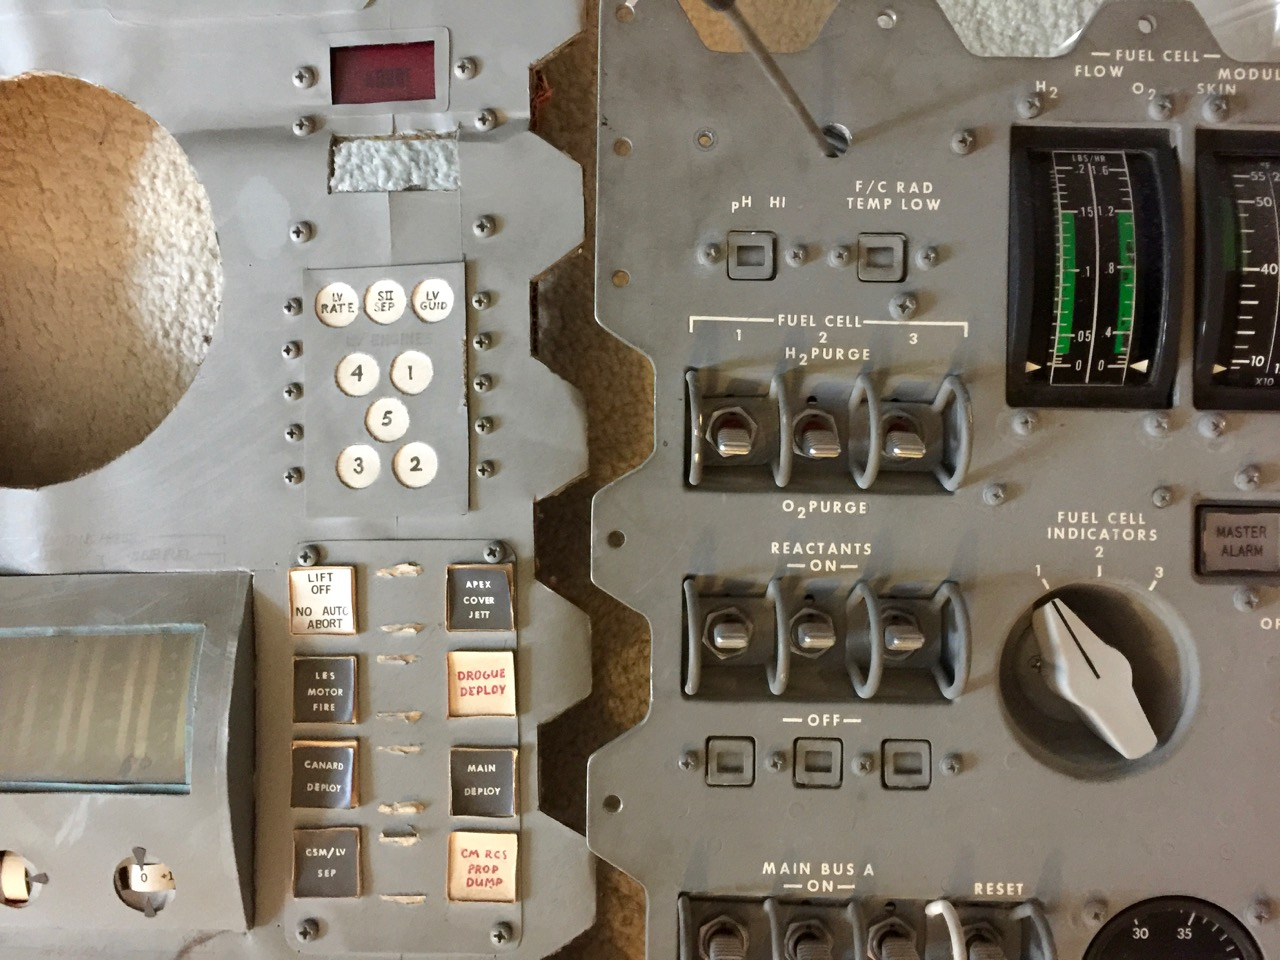 apollo capsule control panel - photo #38